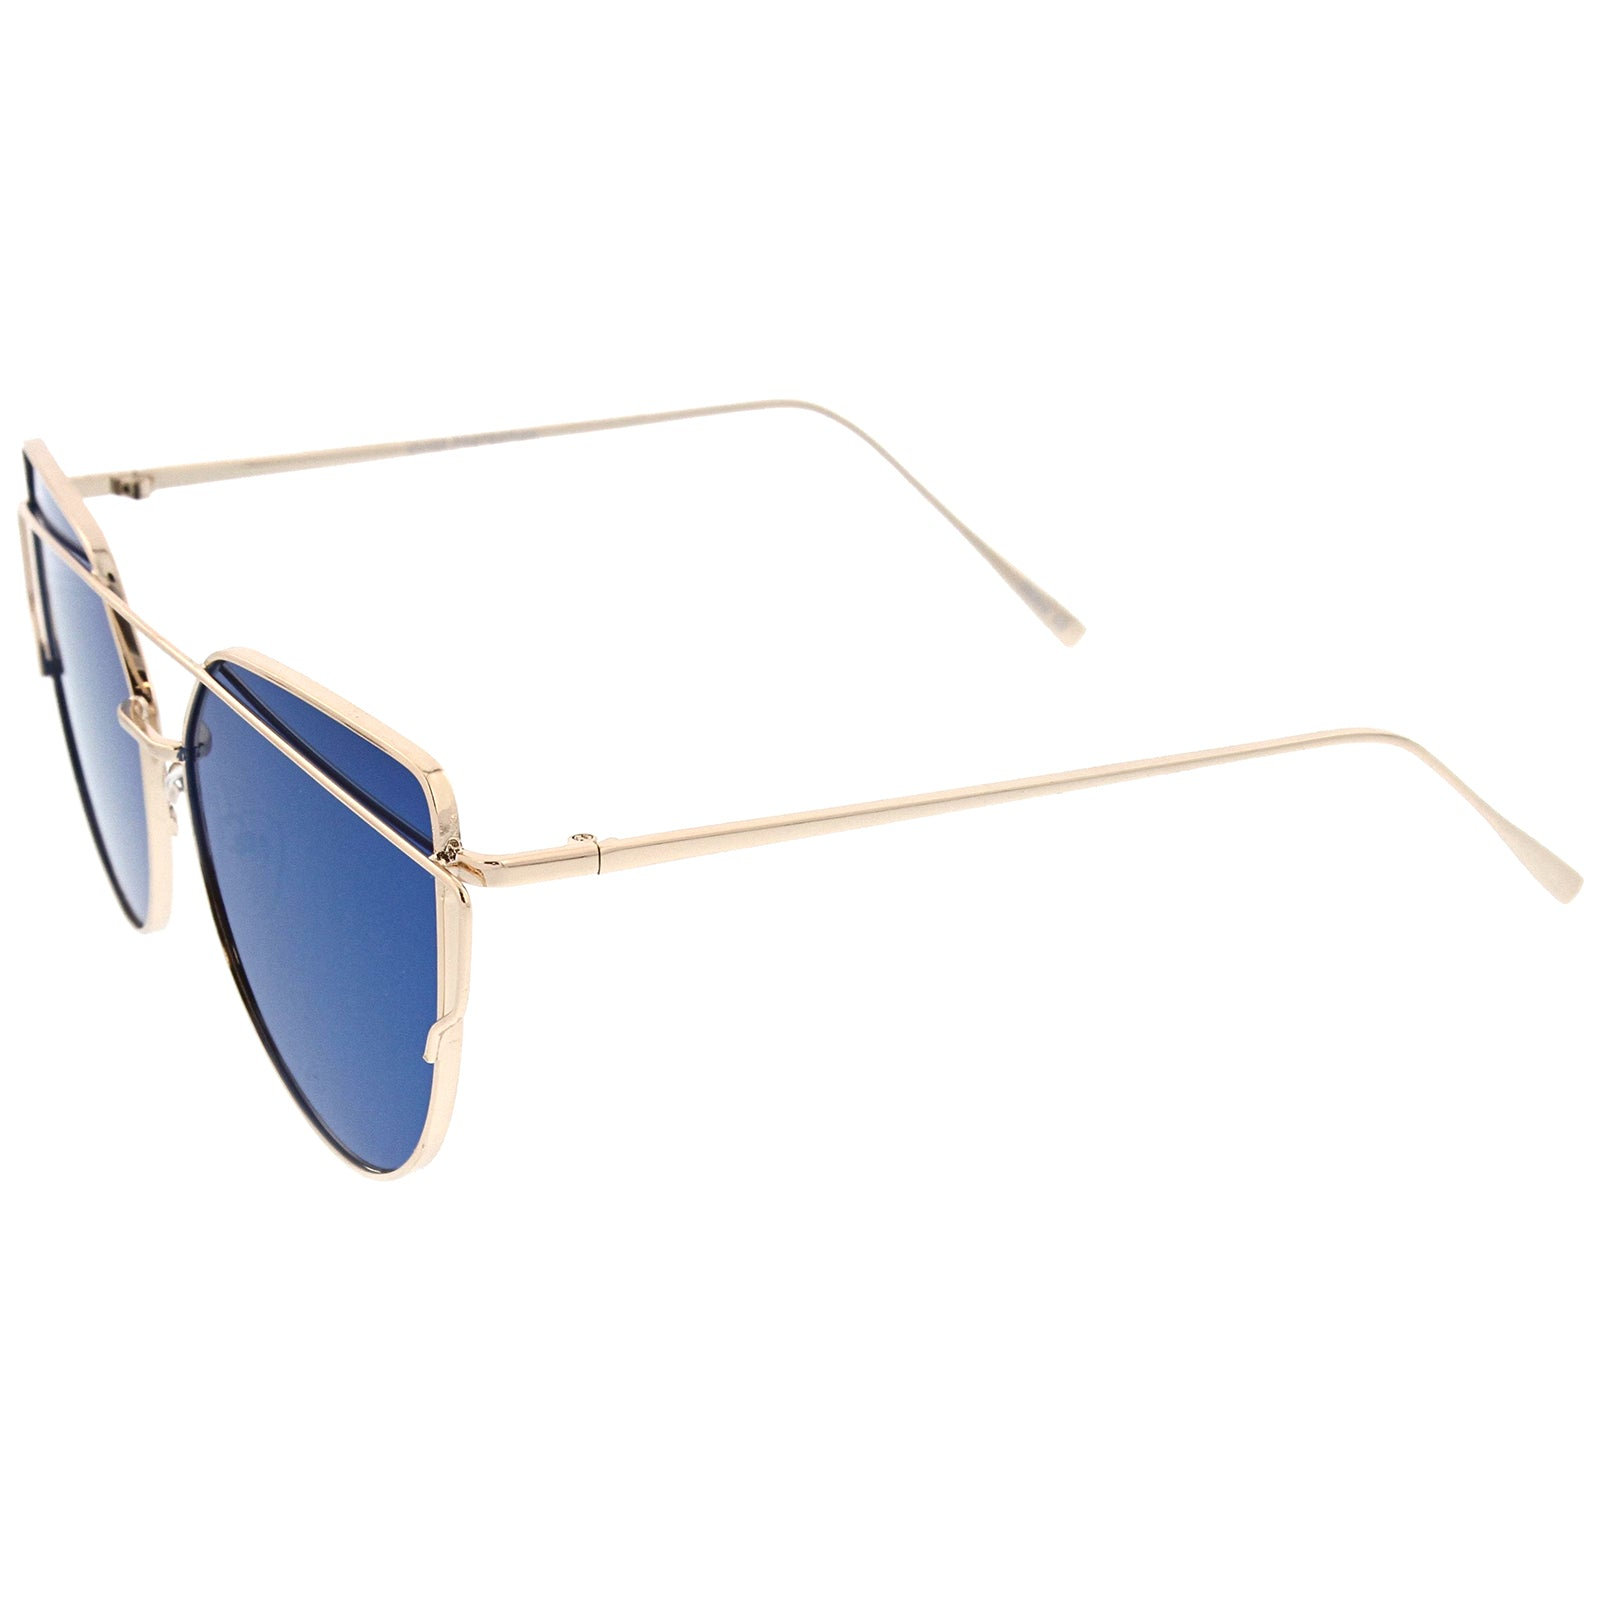 Oversize Metal Frame Thin Temple Color Mirror Flat Lens Aviator Sunglasses 62mm - sunglass.la - 11